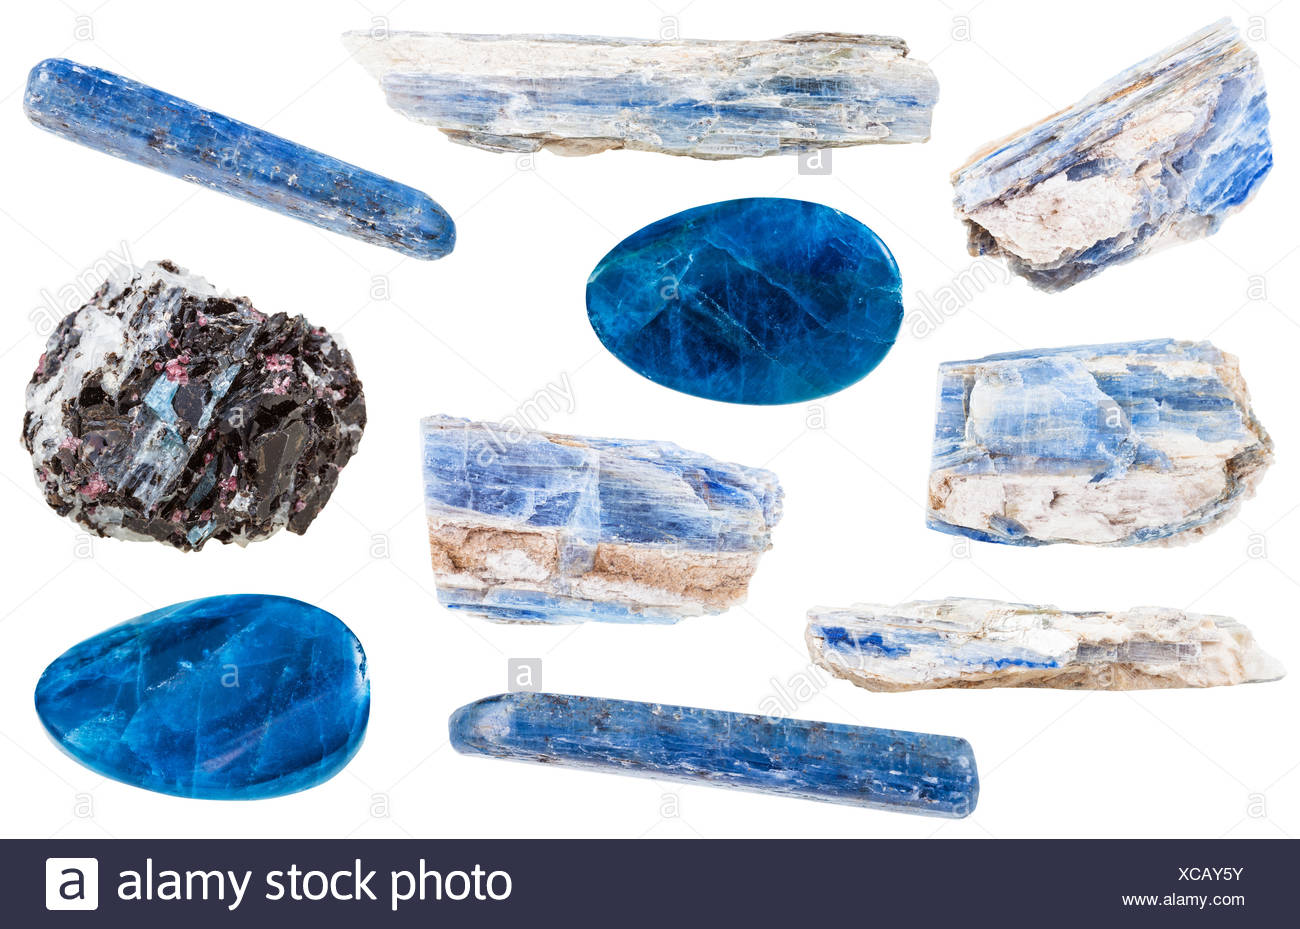 collection of polished and raw kyanite stones - Stock Image